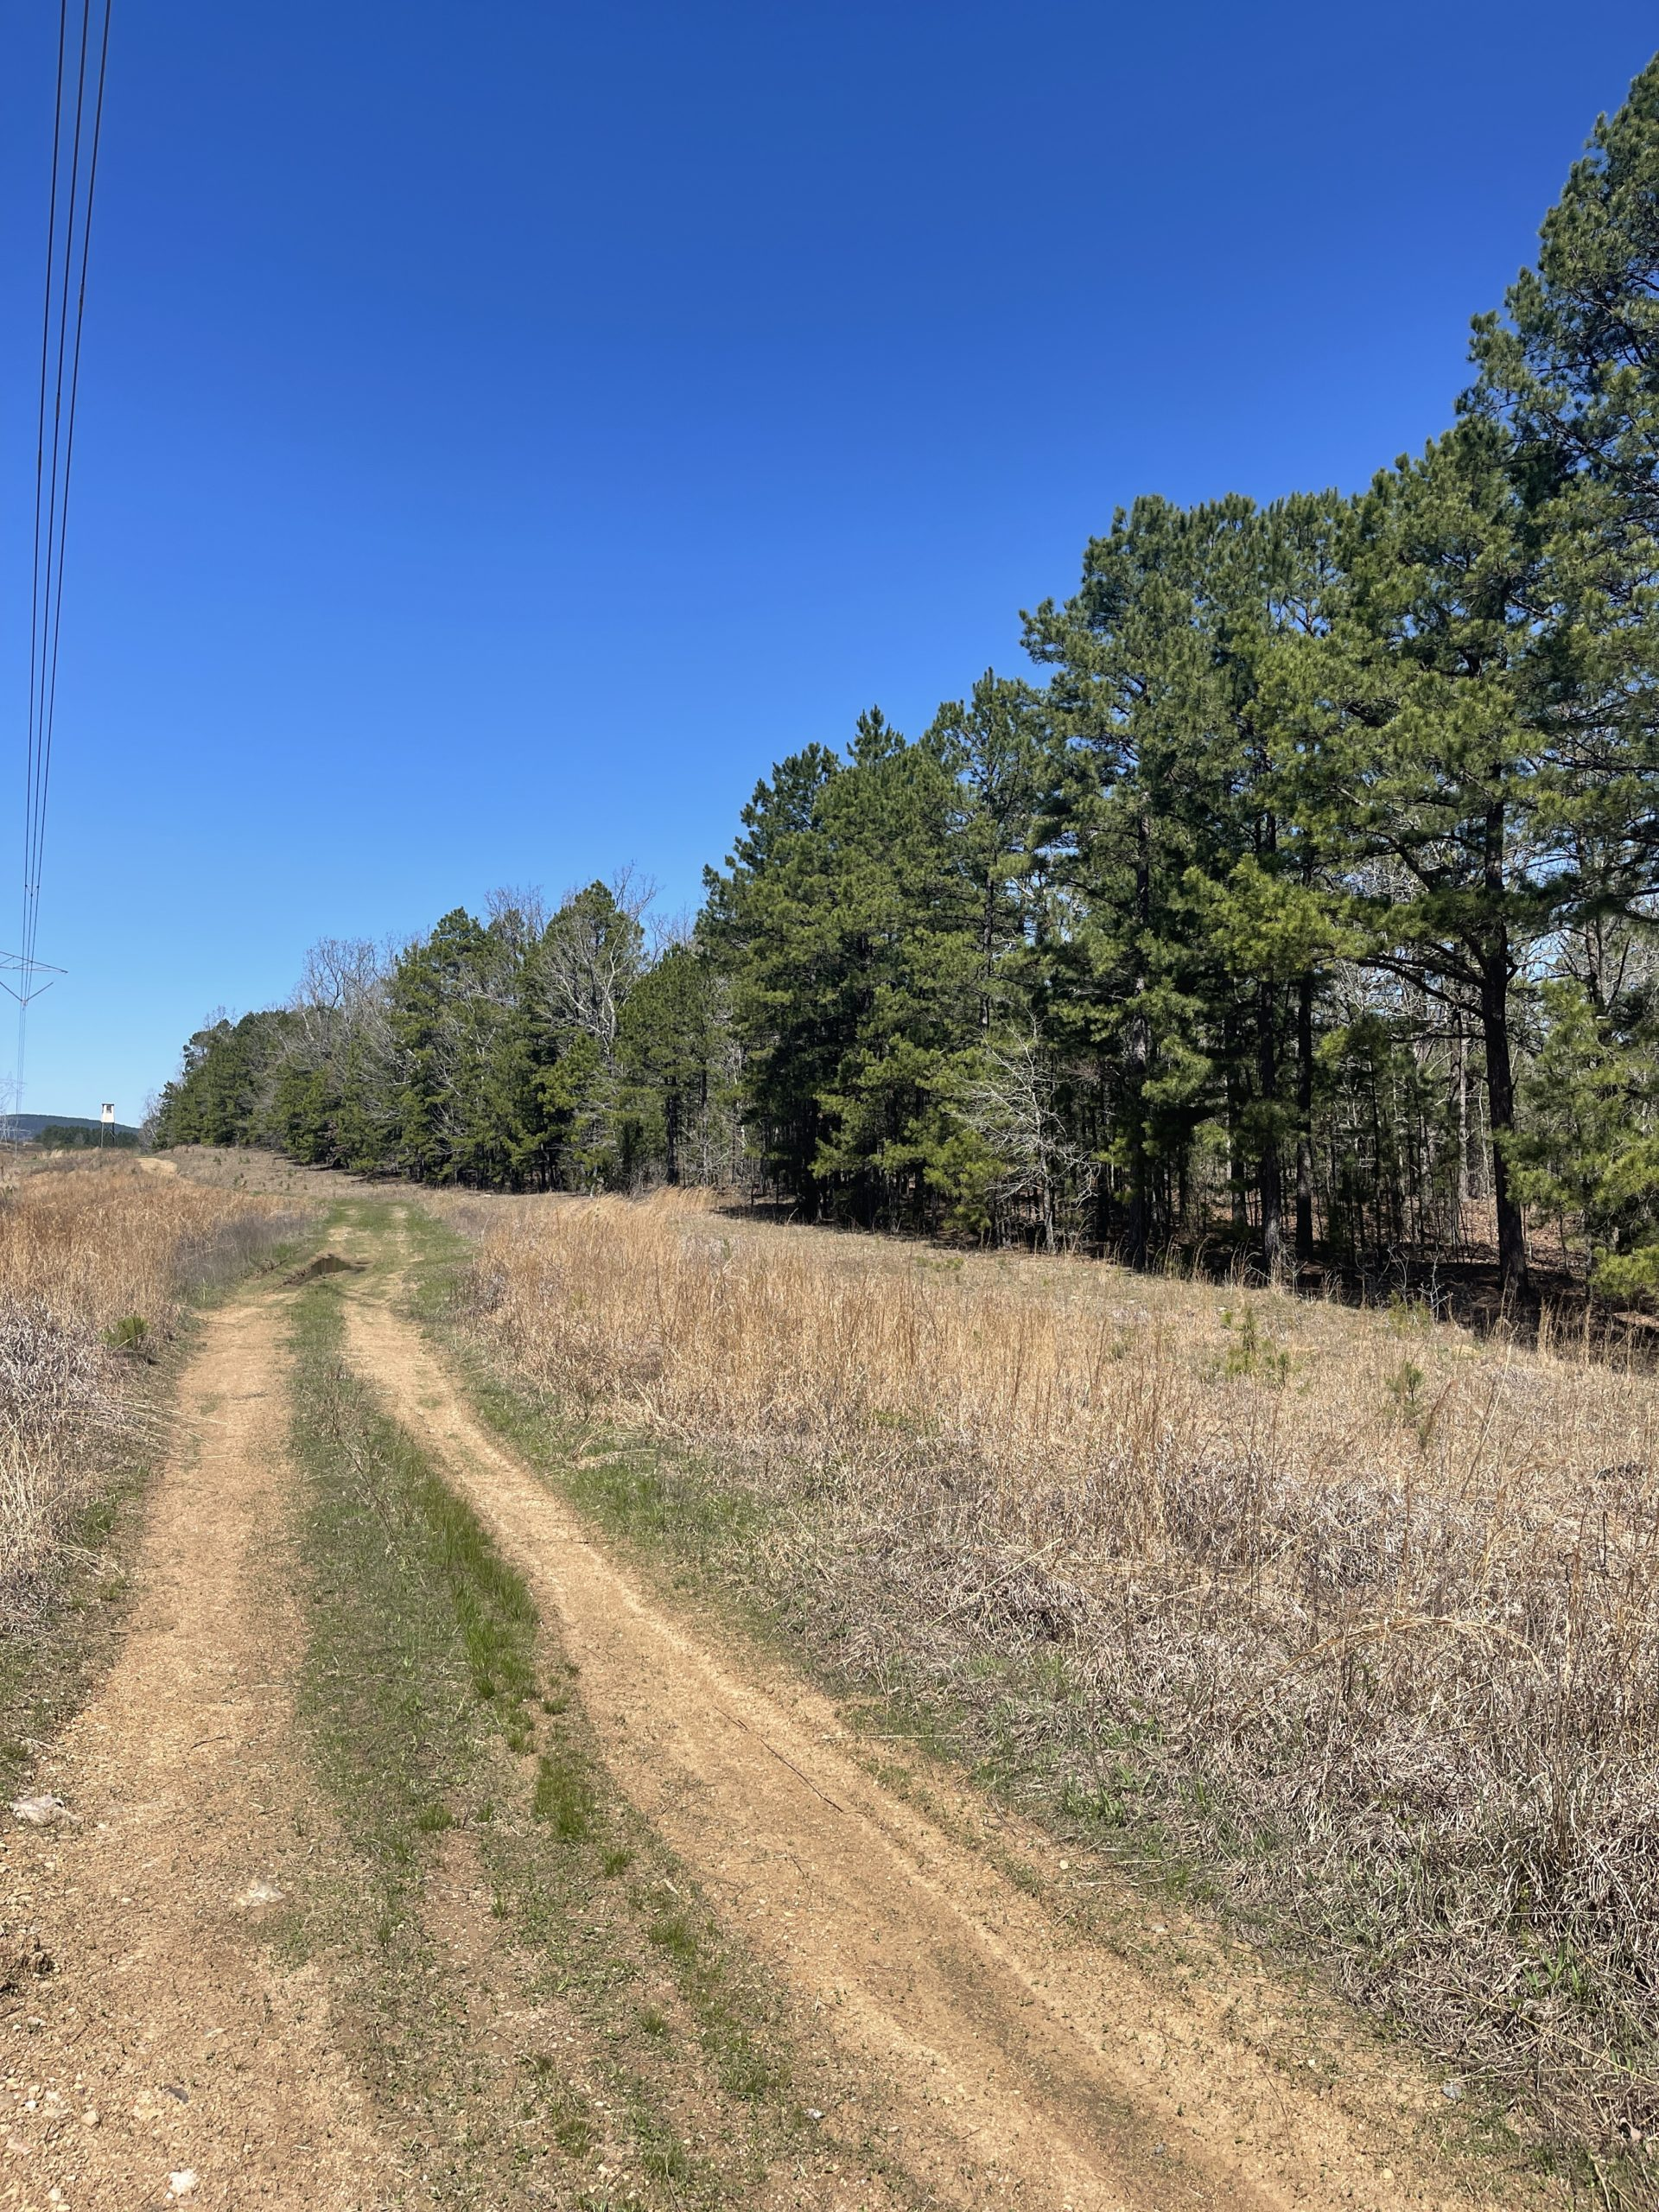 Land for Sale in Pulaski County, AR near Lake Maumelle and Little Rock.